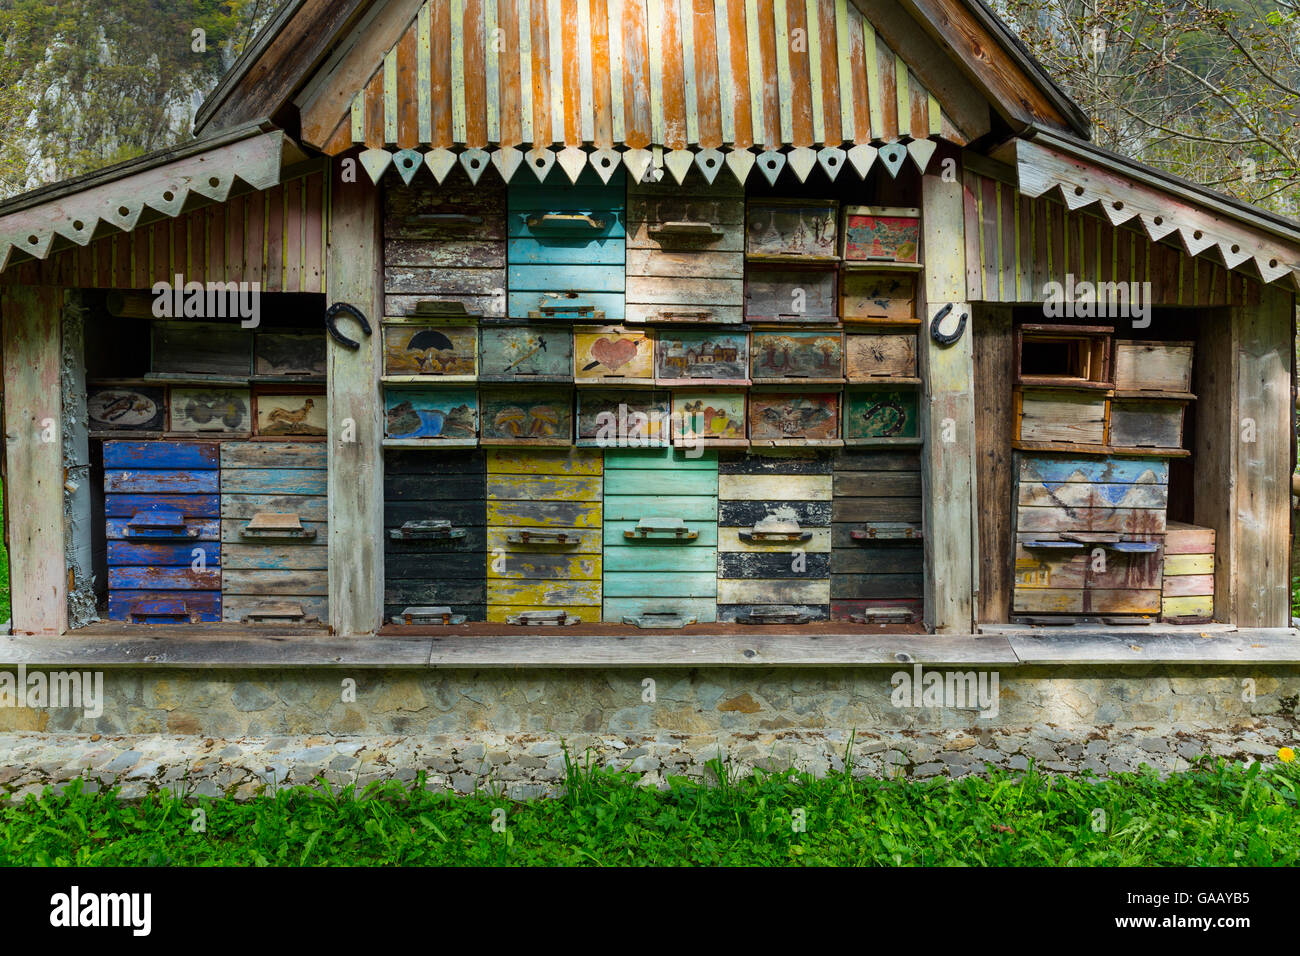 Cabin sheltering traditional behives, Bavsica, Julian Alps, Slovenia. October 2014. - Stock Image